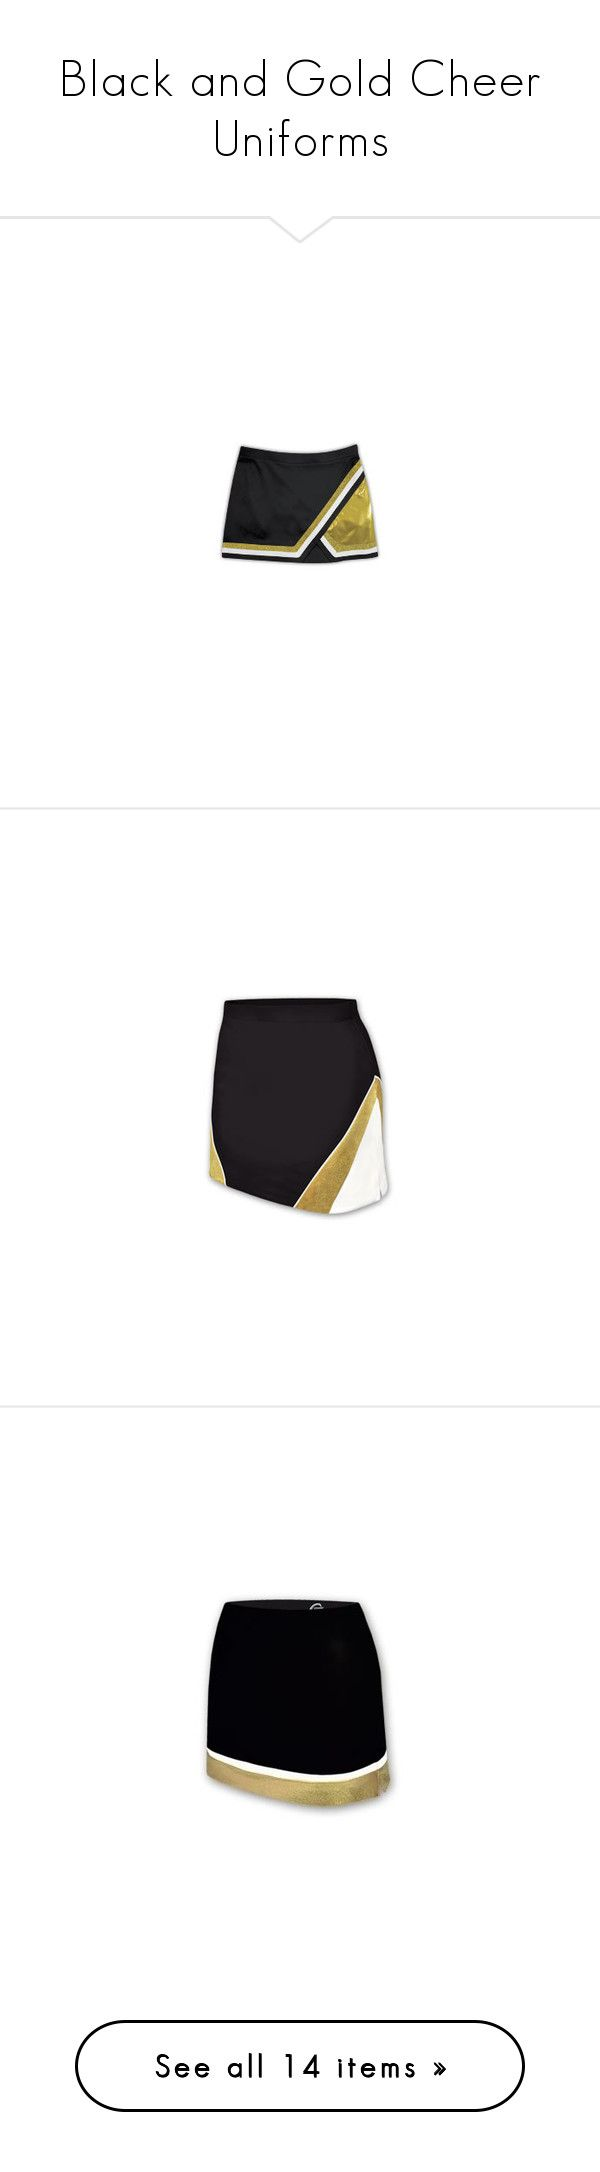 """""""Black and Gold Cheer Uniforms"""" by galacticpeanut ❤ liked on Polyvore featuring skirts, cheerleading, cheer, sports, metallic a line skirt, sports skirts, a-line skirt, sport skirts, metallic skirt and cheer uniforms"""